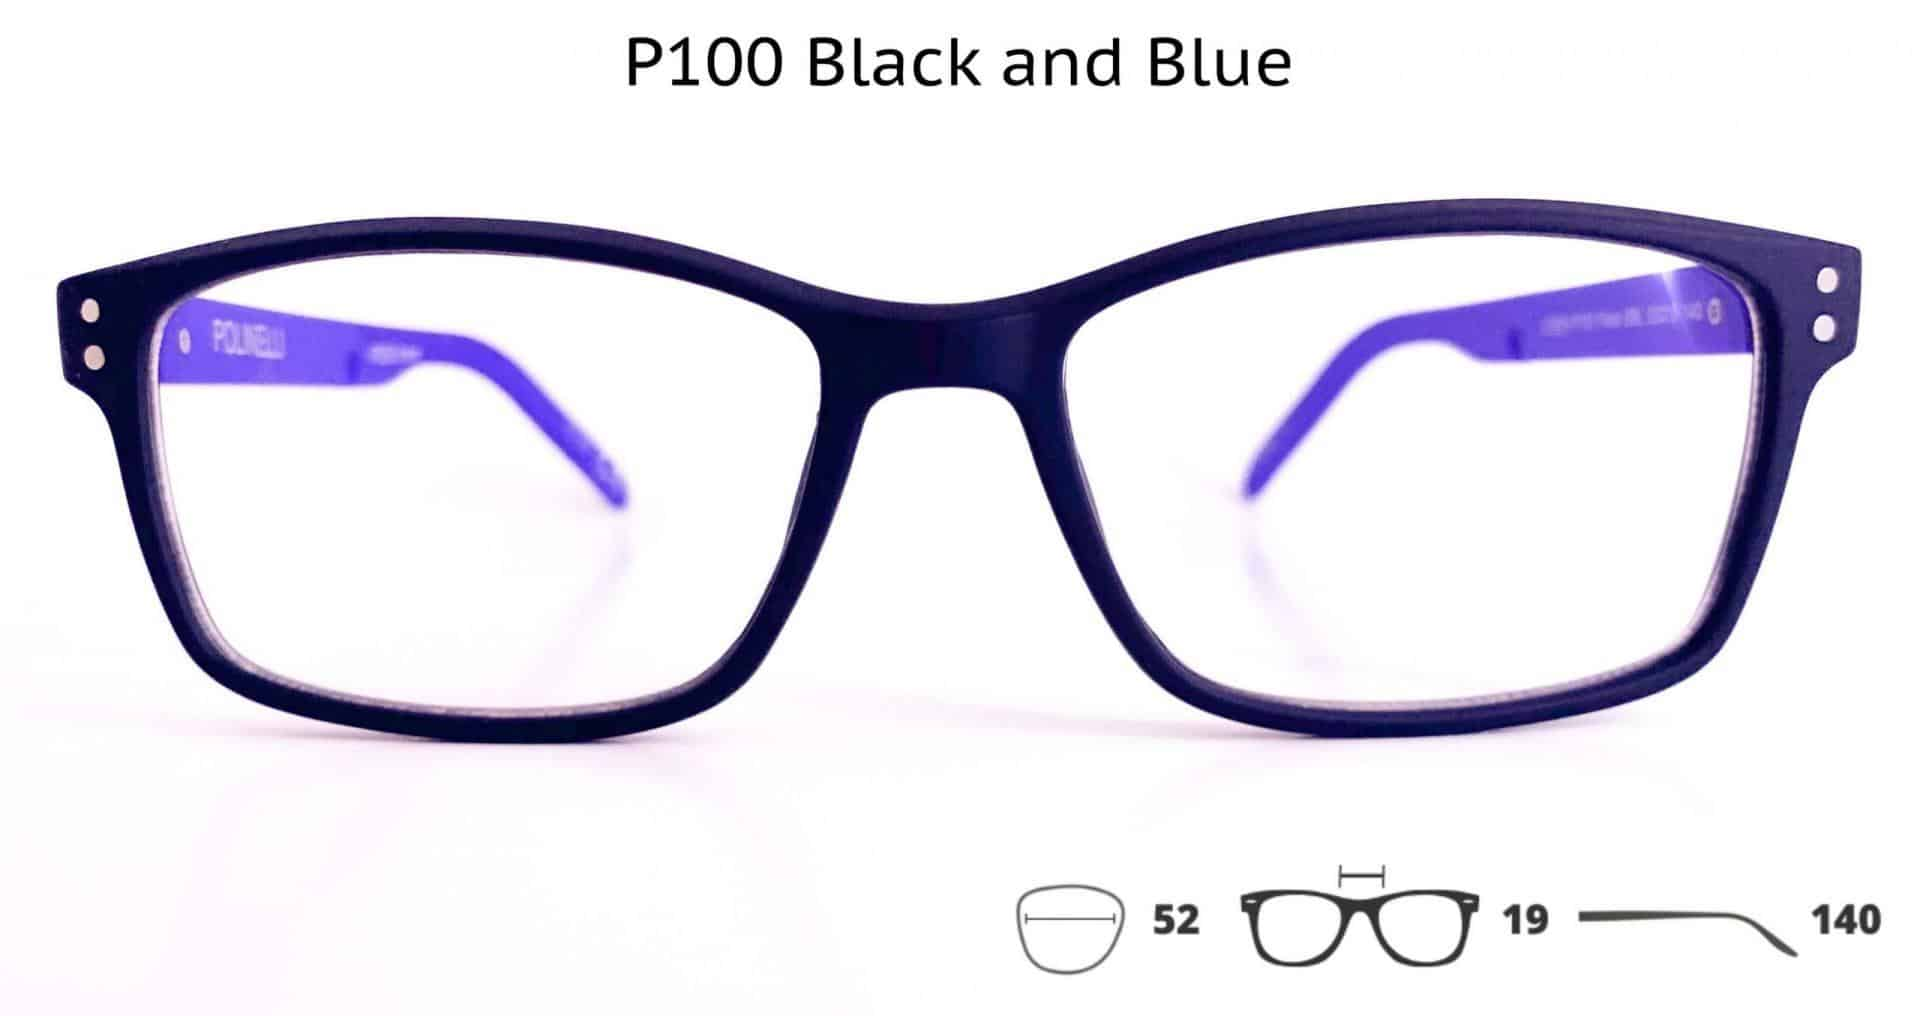 P100 Black and Blue